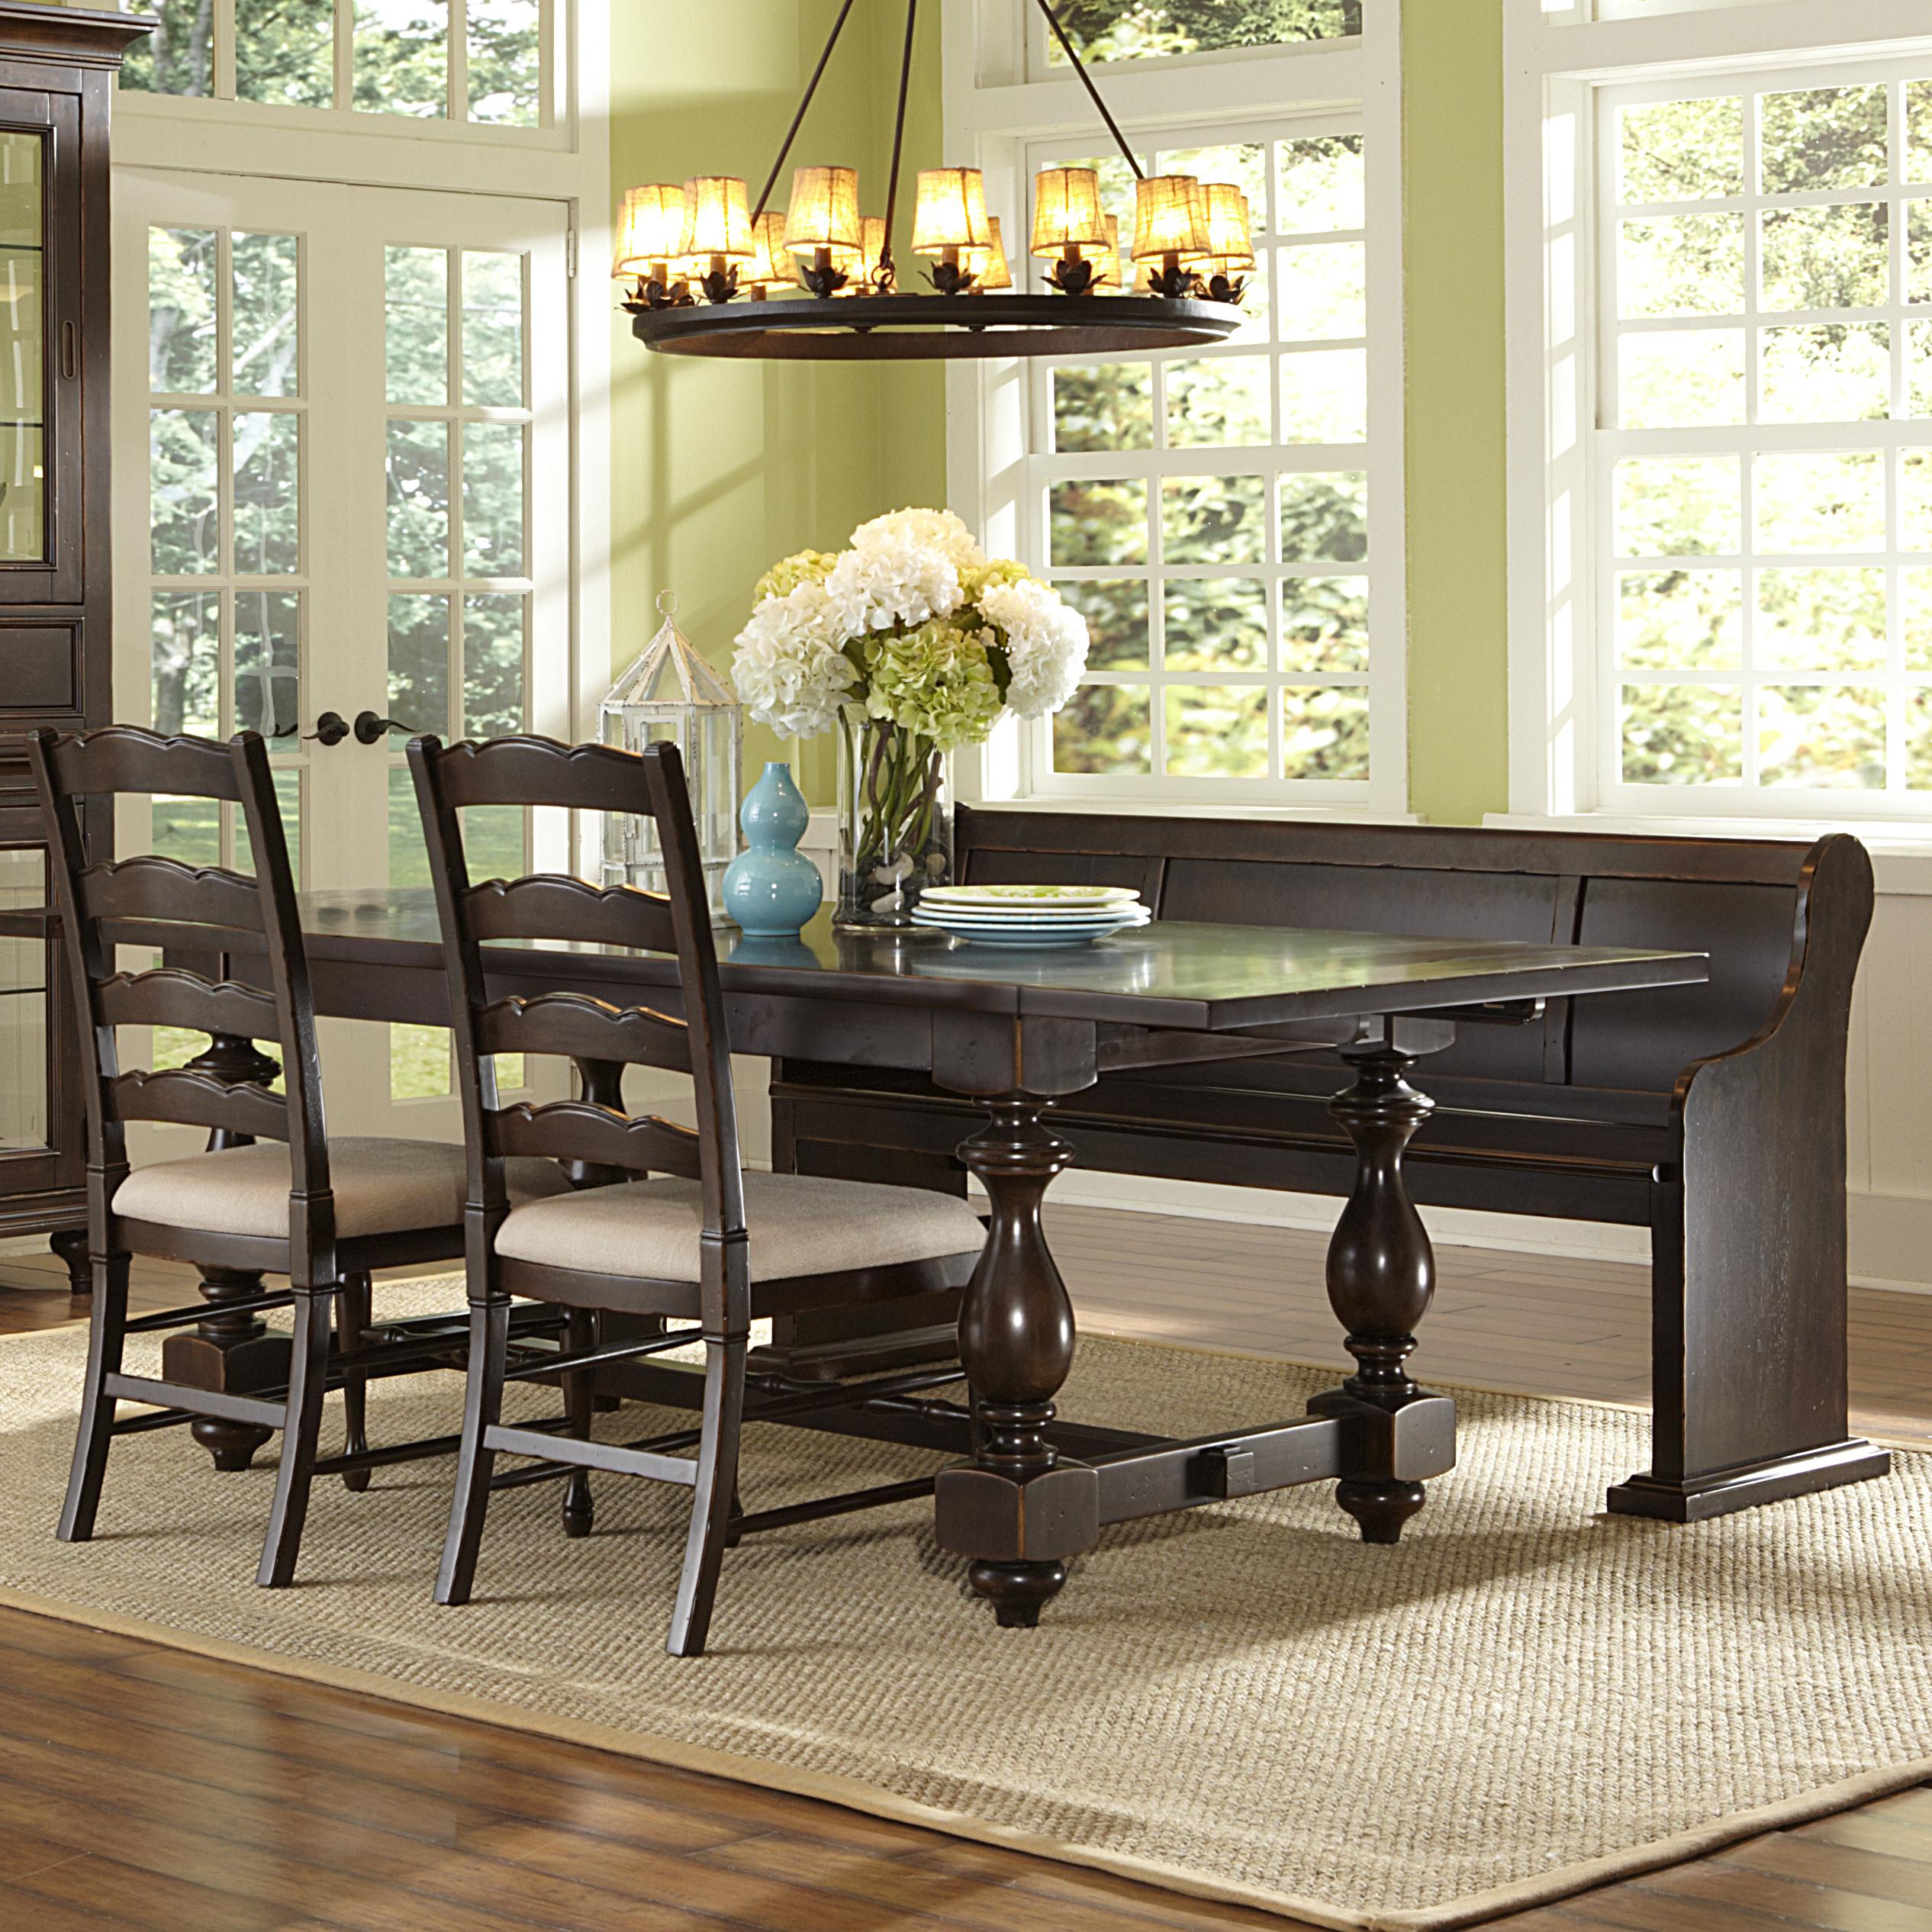 Magnussen Home  Loren 4 Piece Table, Bench and Chair Set - Item Number: D2470-20+79+2x62